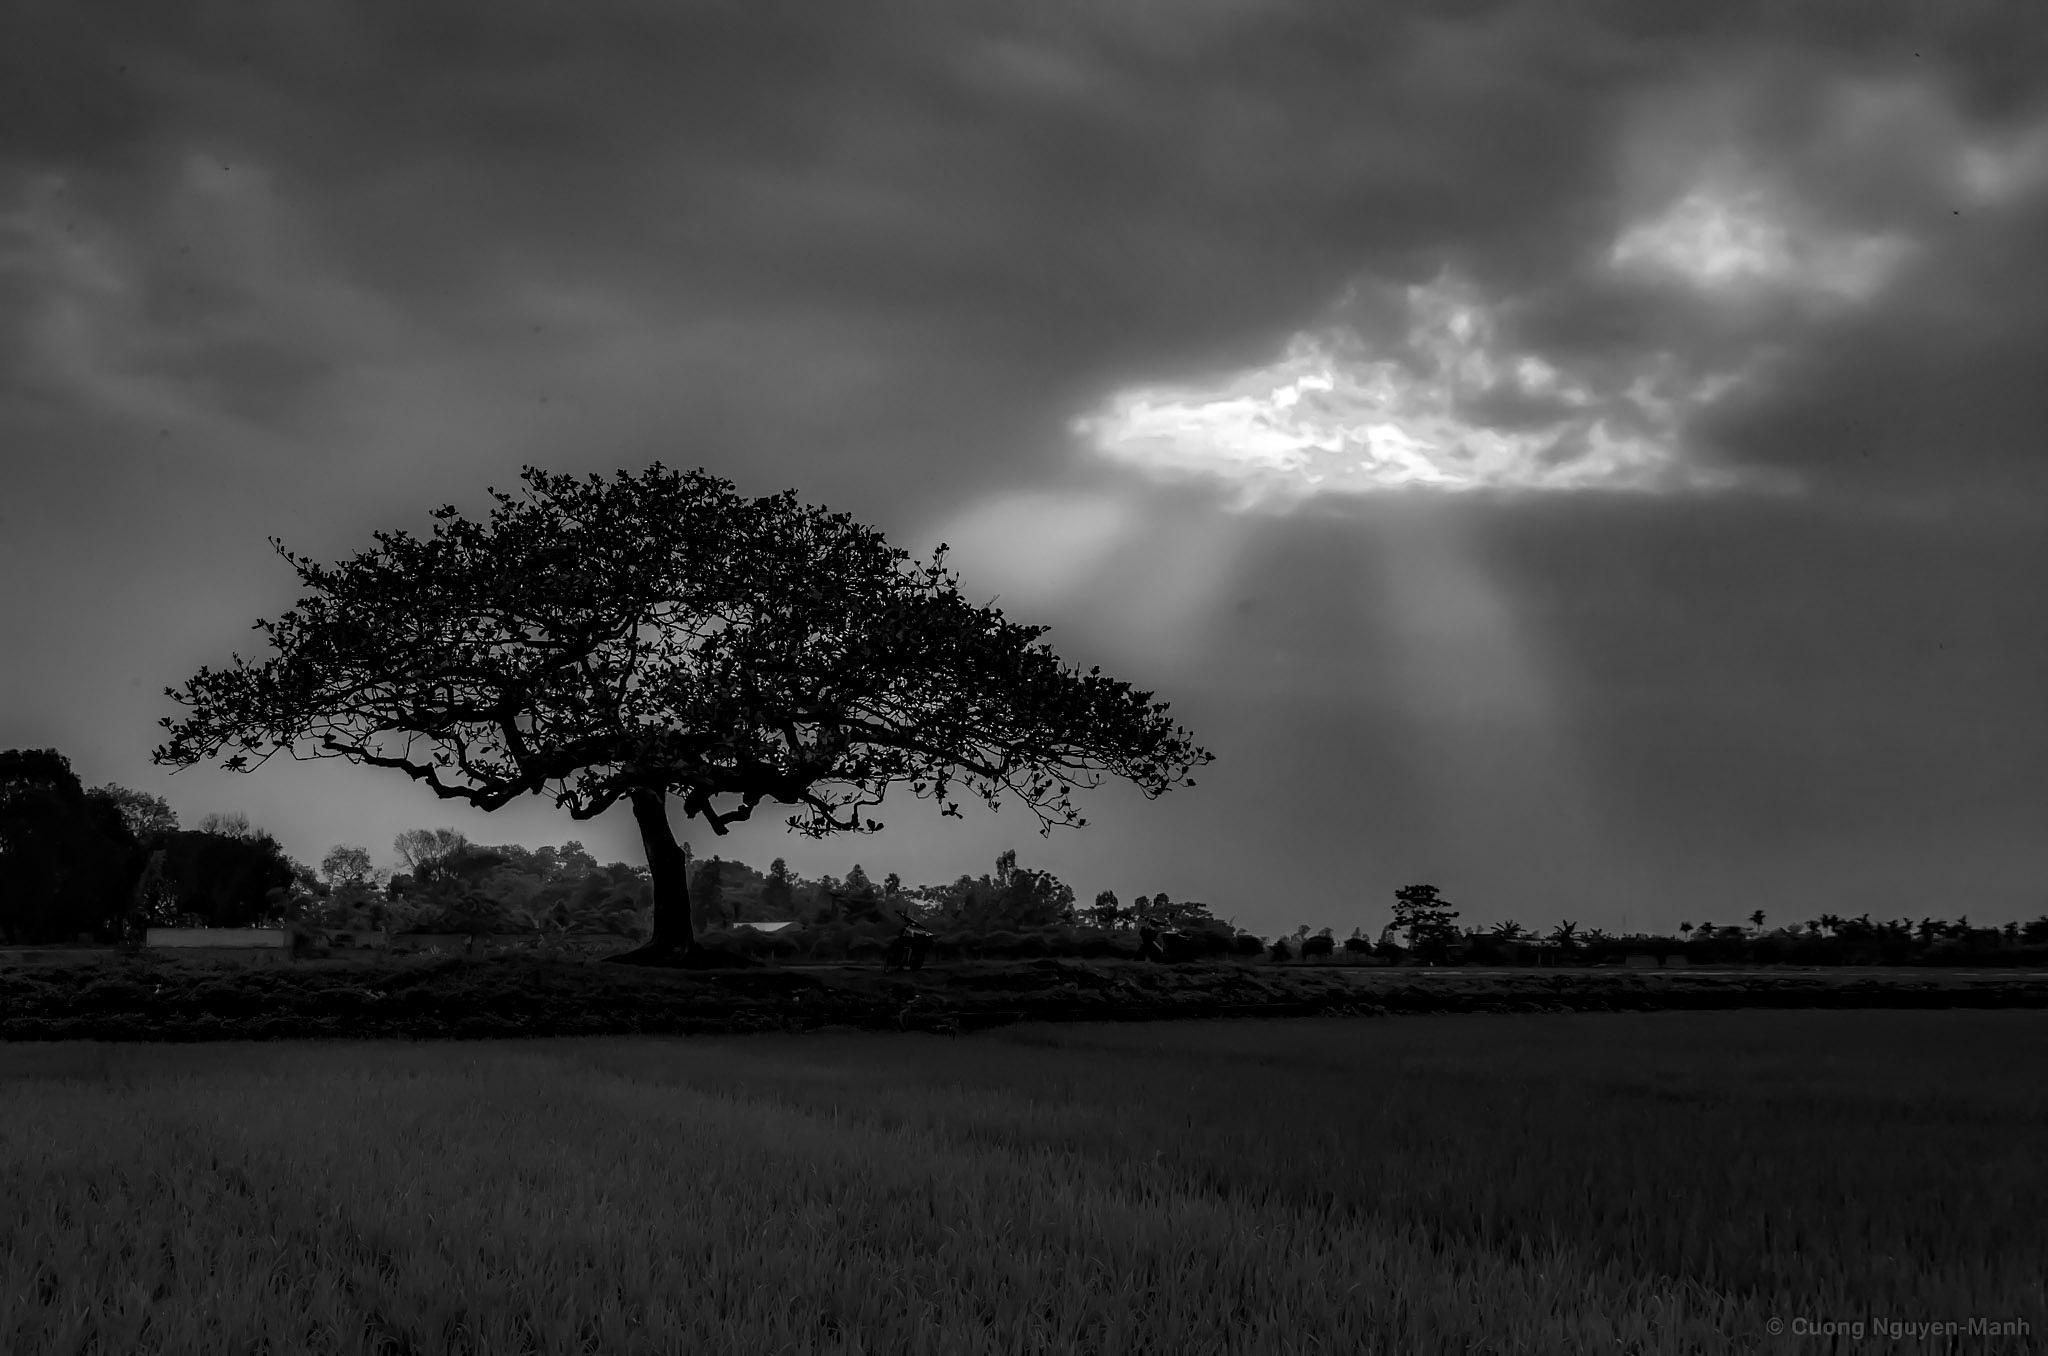 Lone tree by Cuong NM